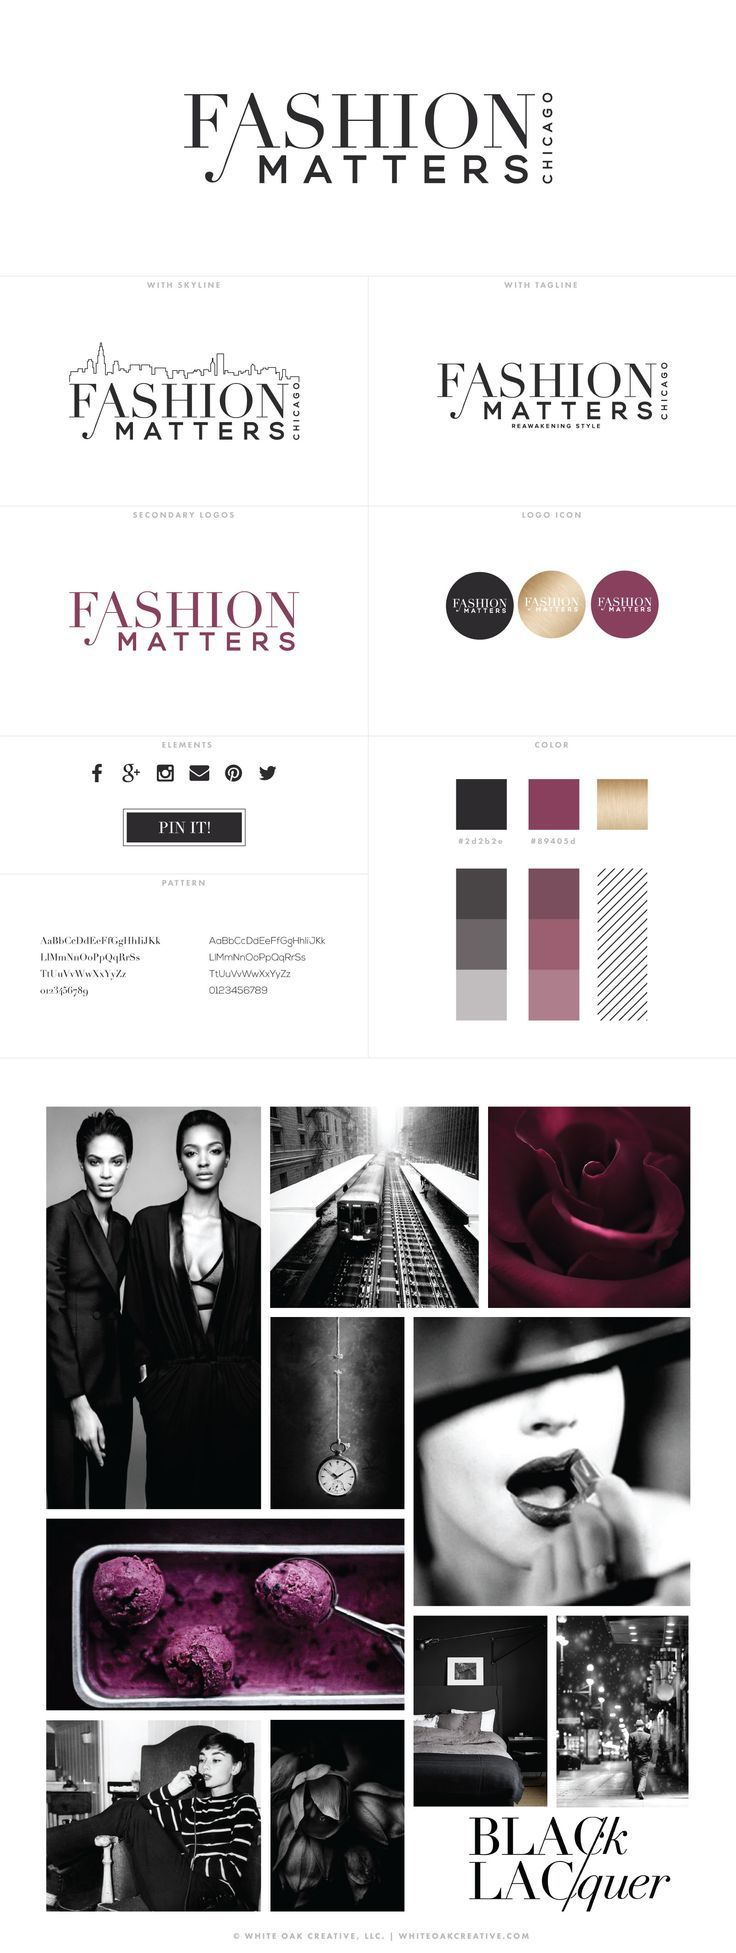 Fashion Matters Chicago Logo Identity, creative business branding, creative business blog design, logo design, wordpress theme, mood board inspiration, blog design idea, graphic design, branding